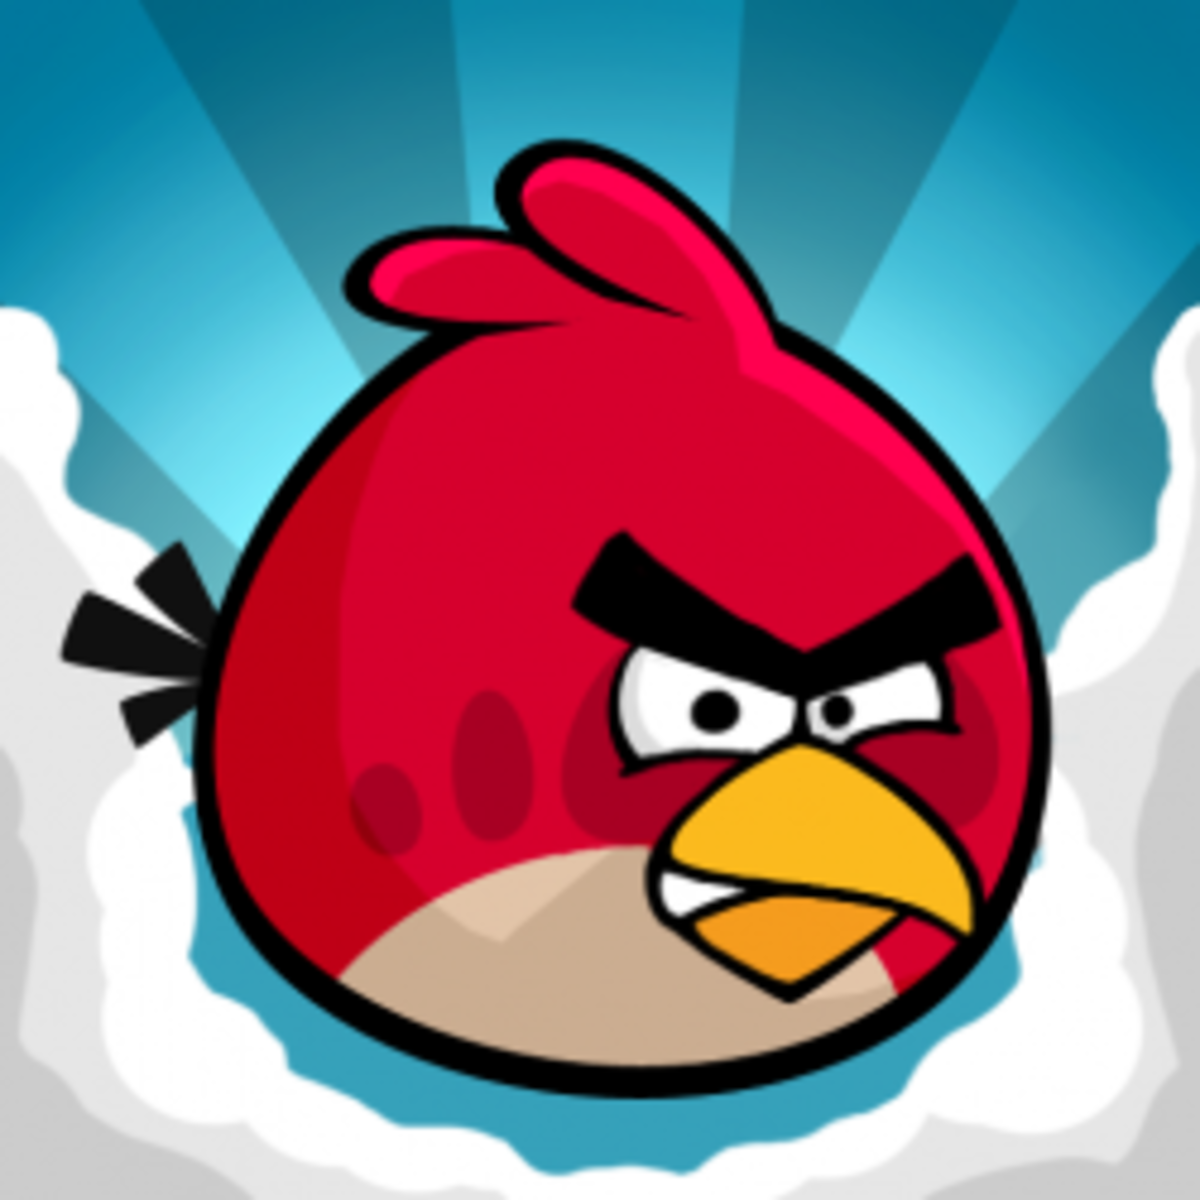 9 Games Like Angry Birds (Free, Online, PC and iPhone)